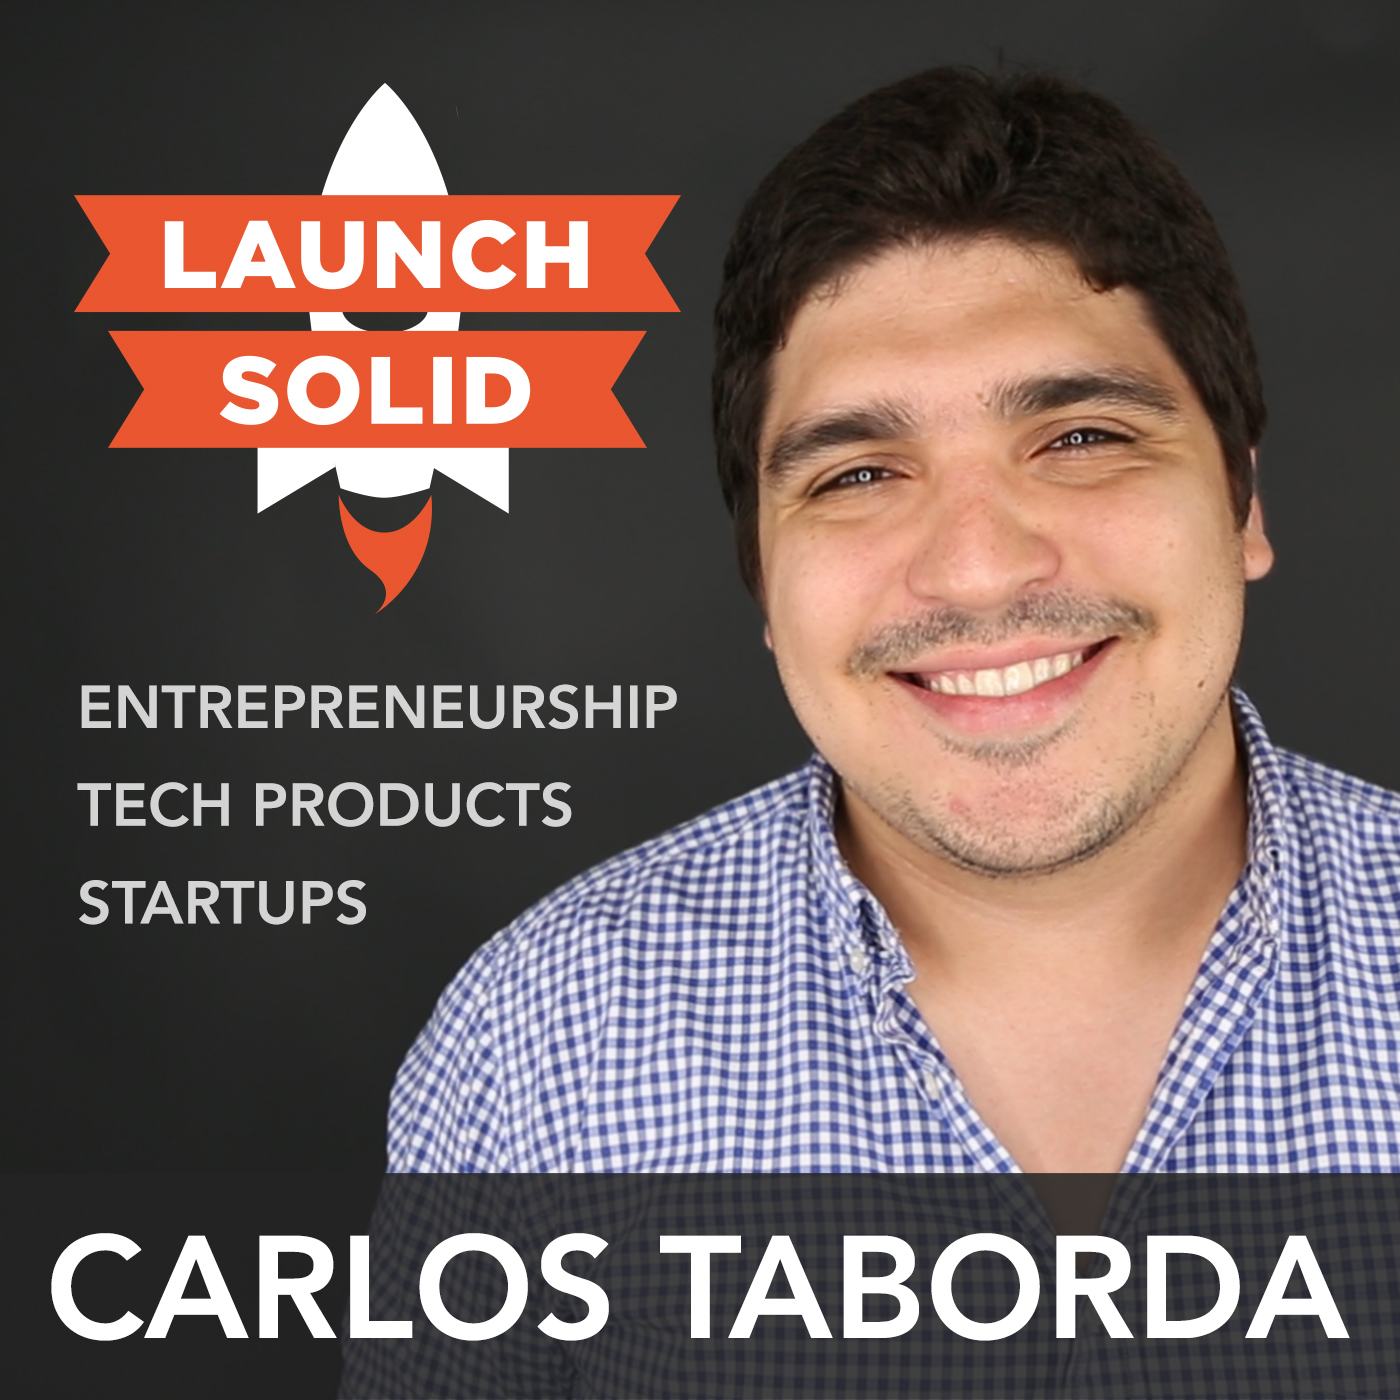 Launch Solid / Startups